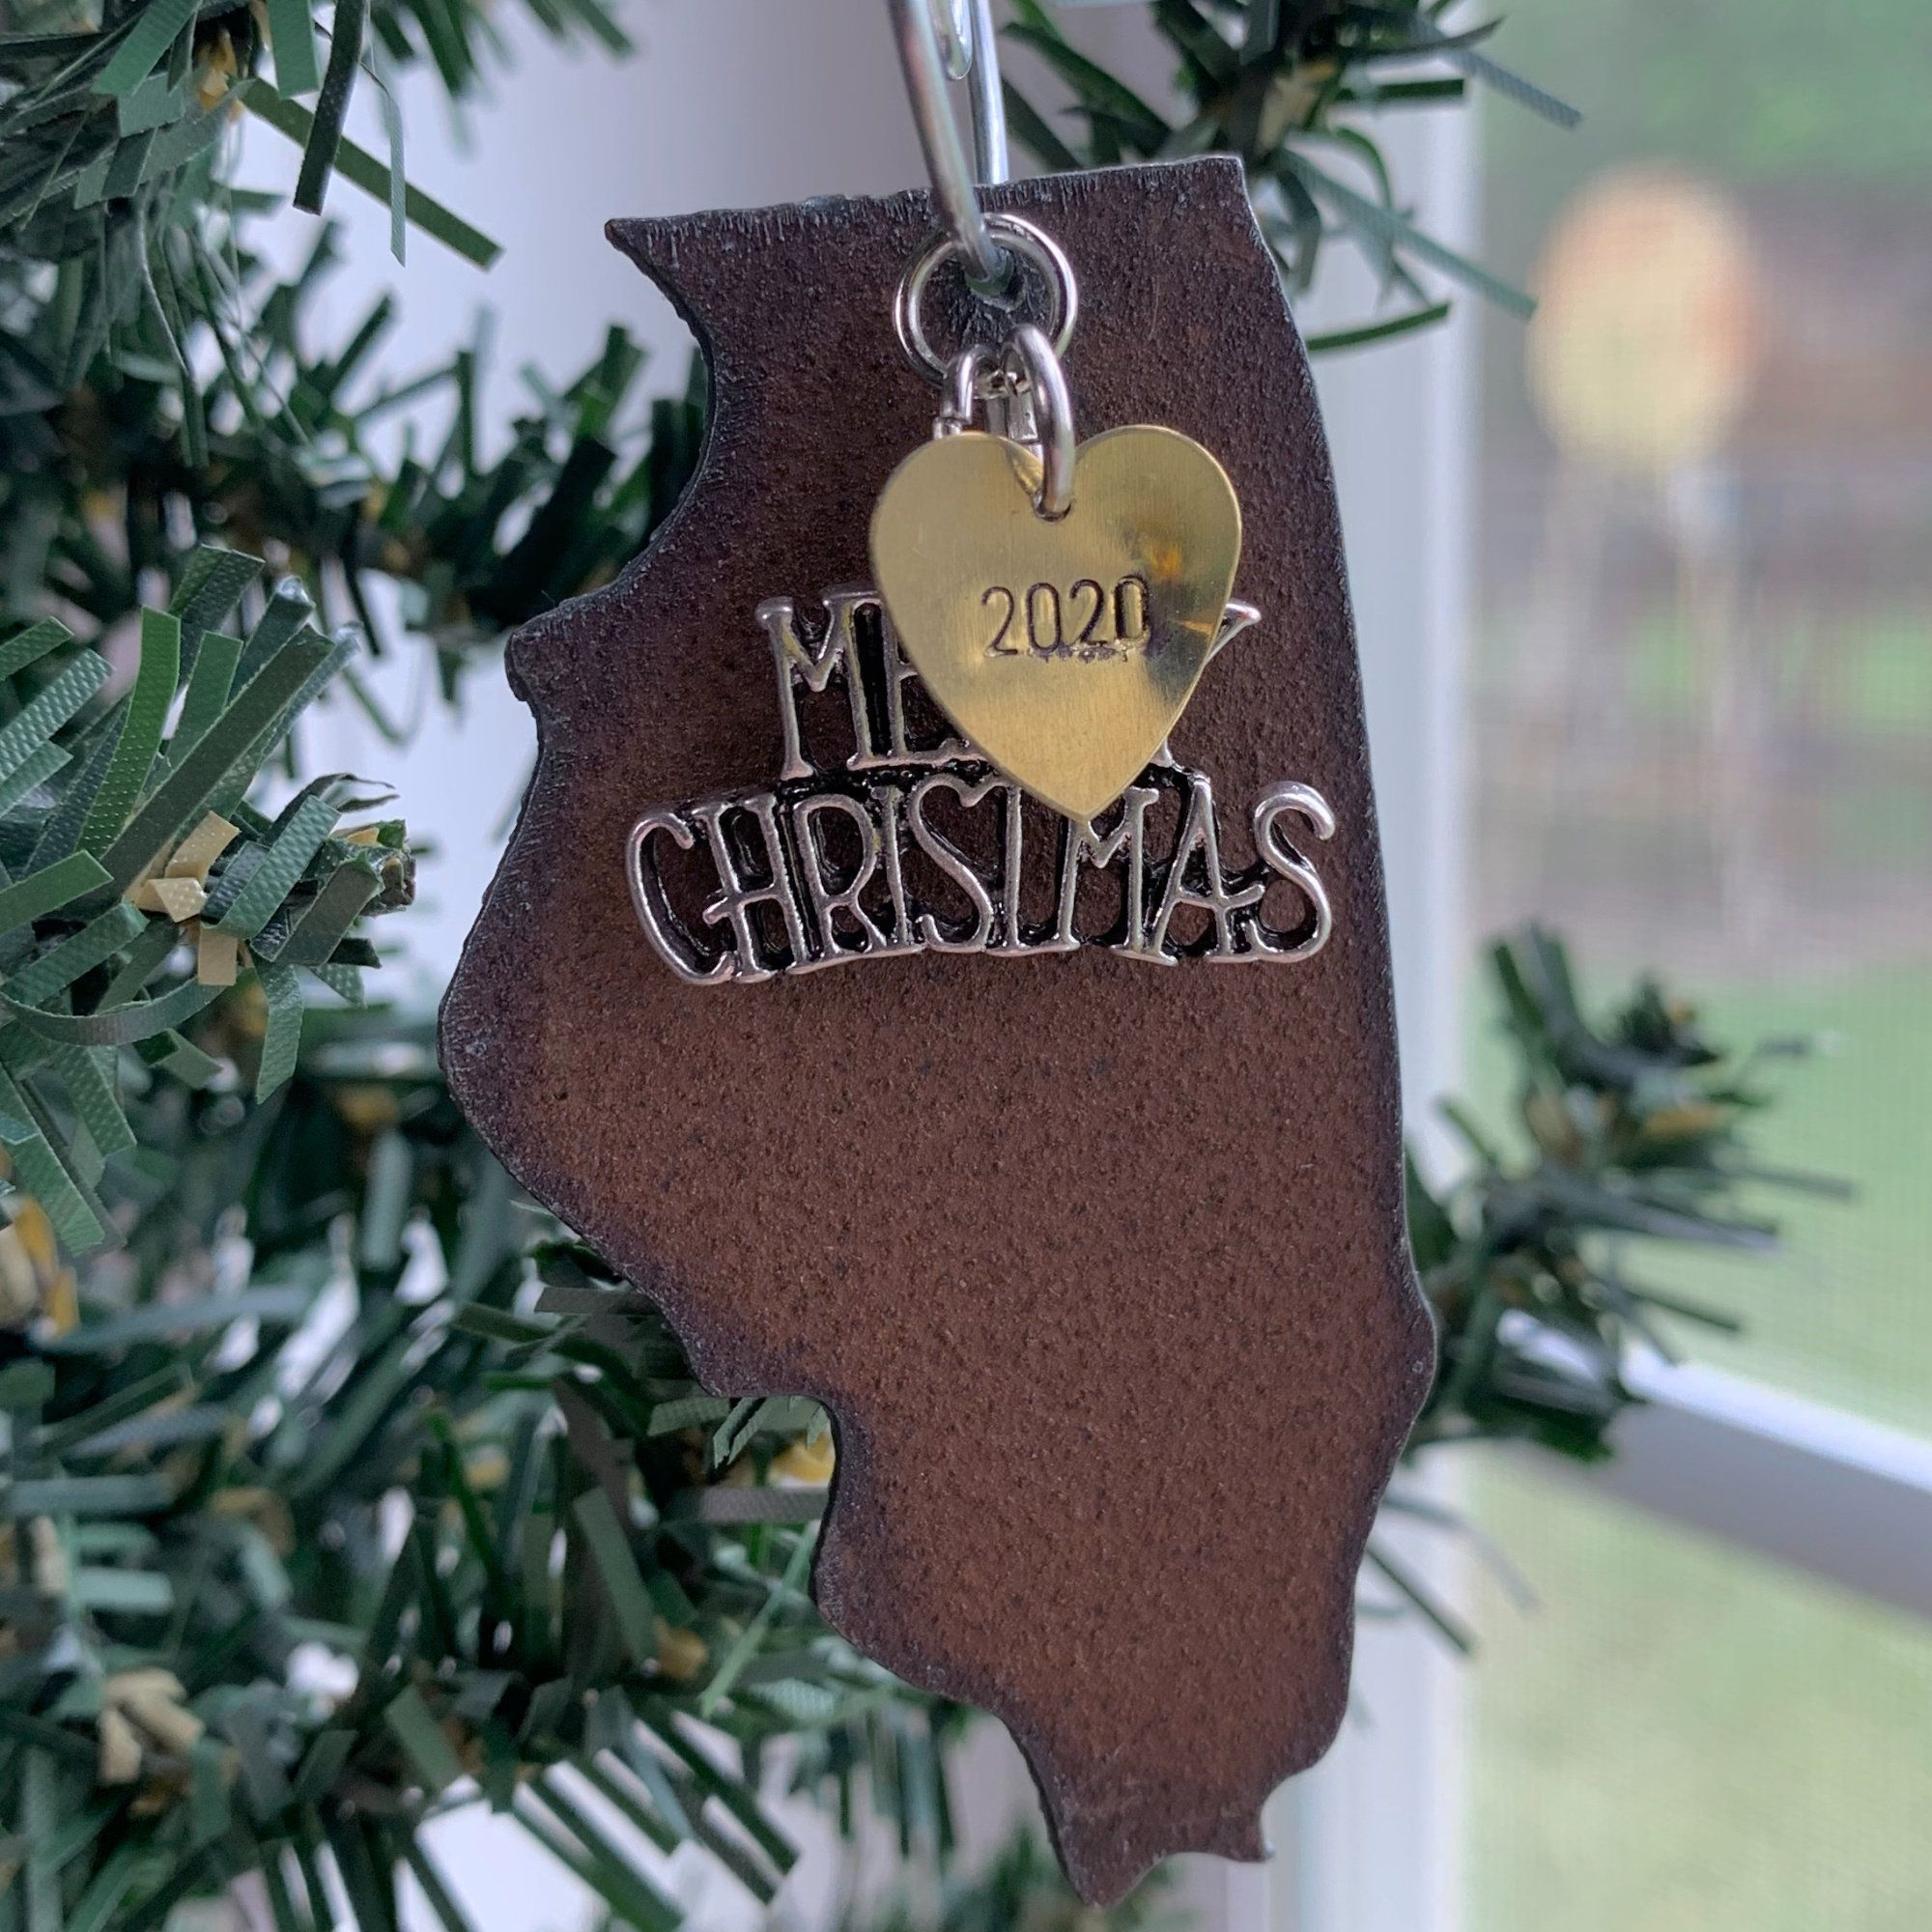 ILLINOIS Christmas Ornament / Rustic Metal Hand Stamped